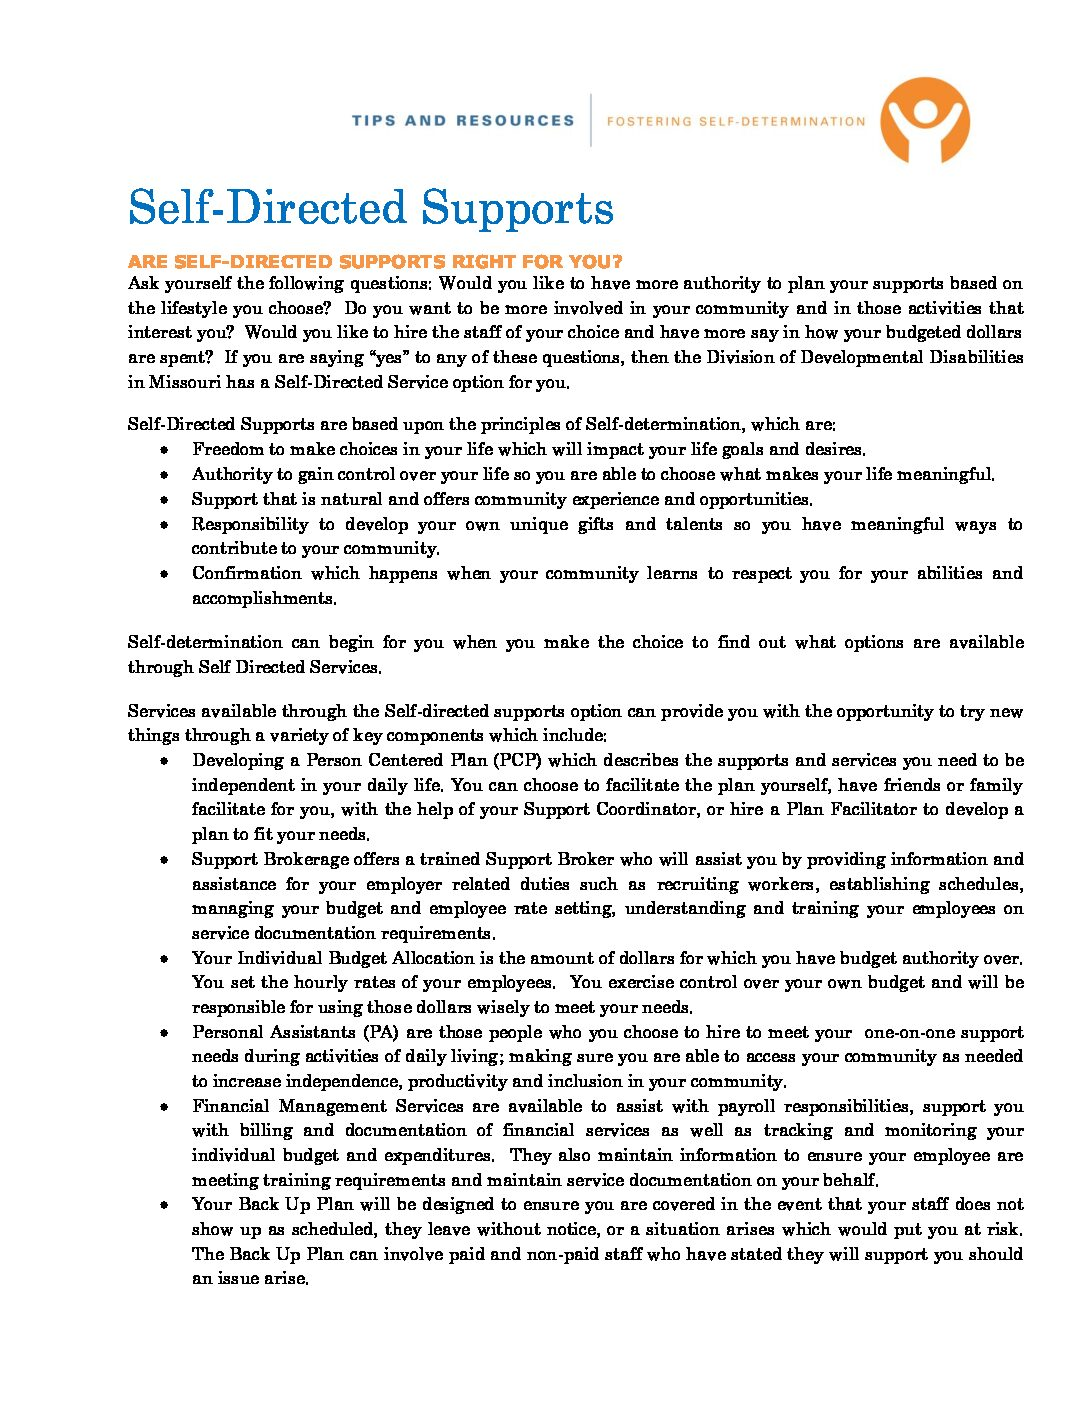 Self-Directed Supports ARE SELF-DIRECTED SUPPORTS RIGHT FOR YOU?